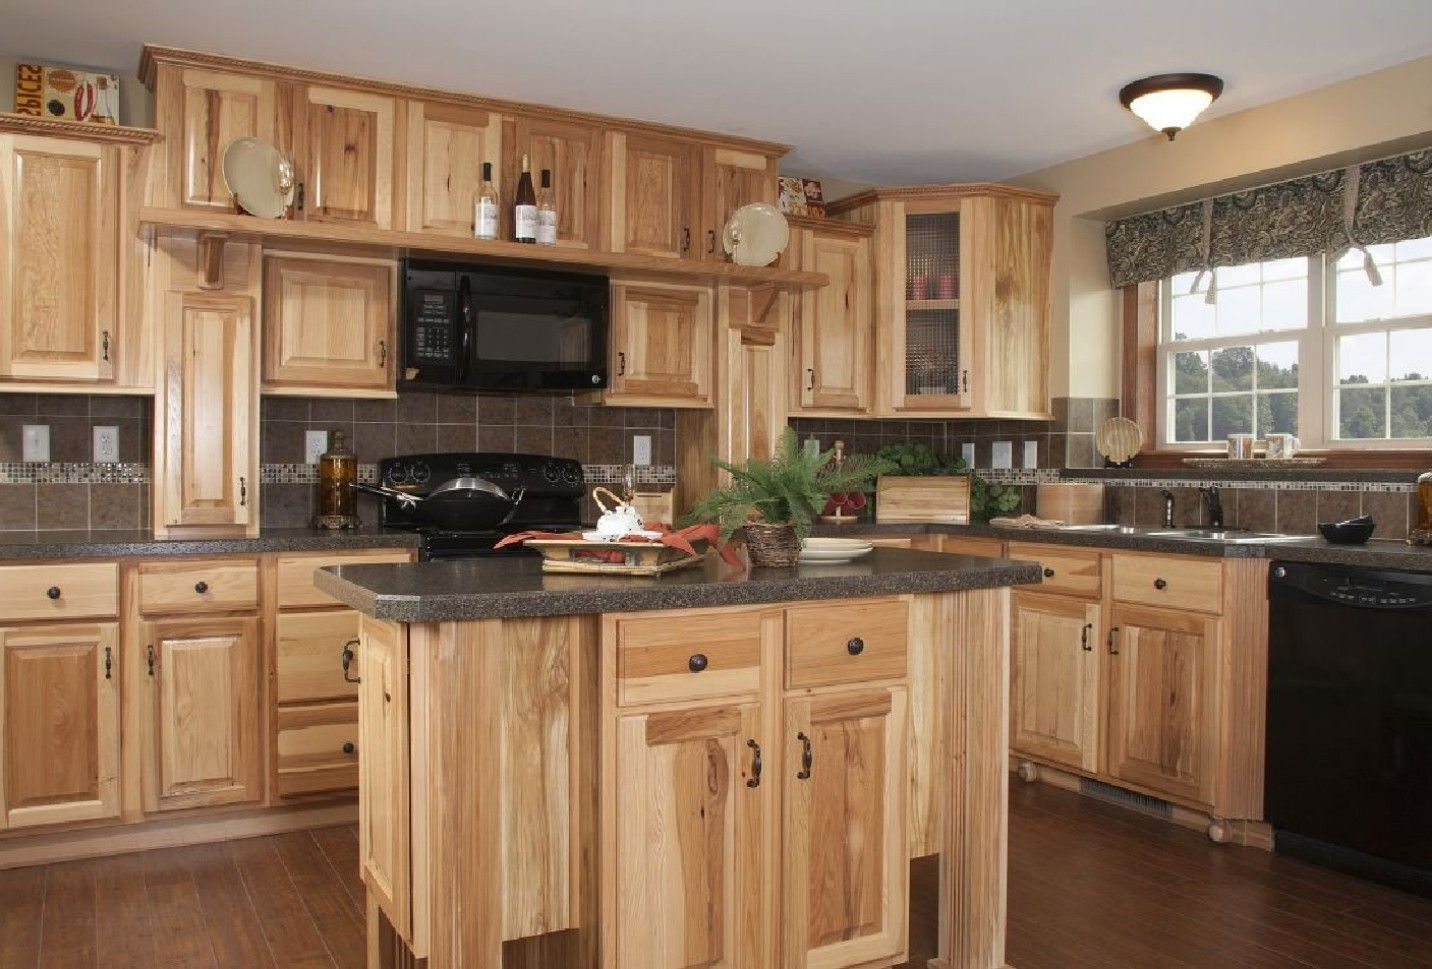 Love These Cabinets And Dark Counter From Home Depot Rustic Kitchen Cabinets Home Depot Kitchen New Kitchen Cabinets